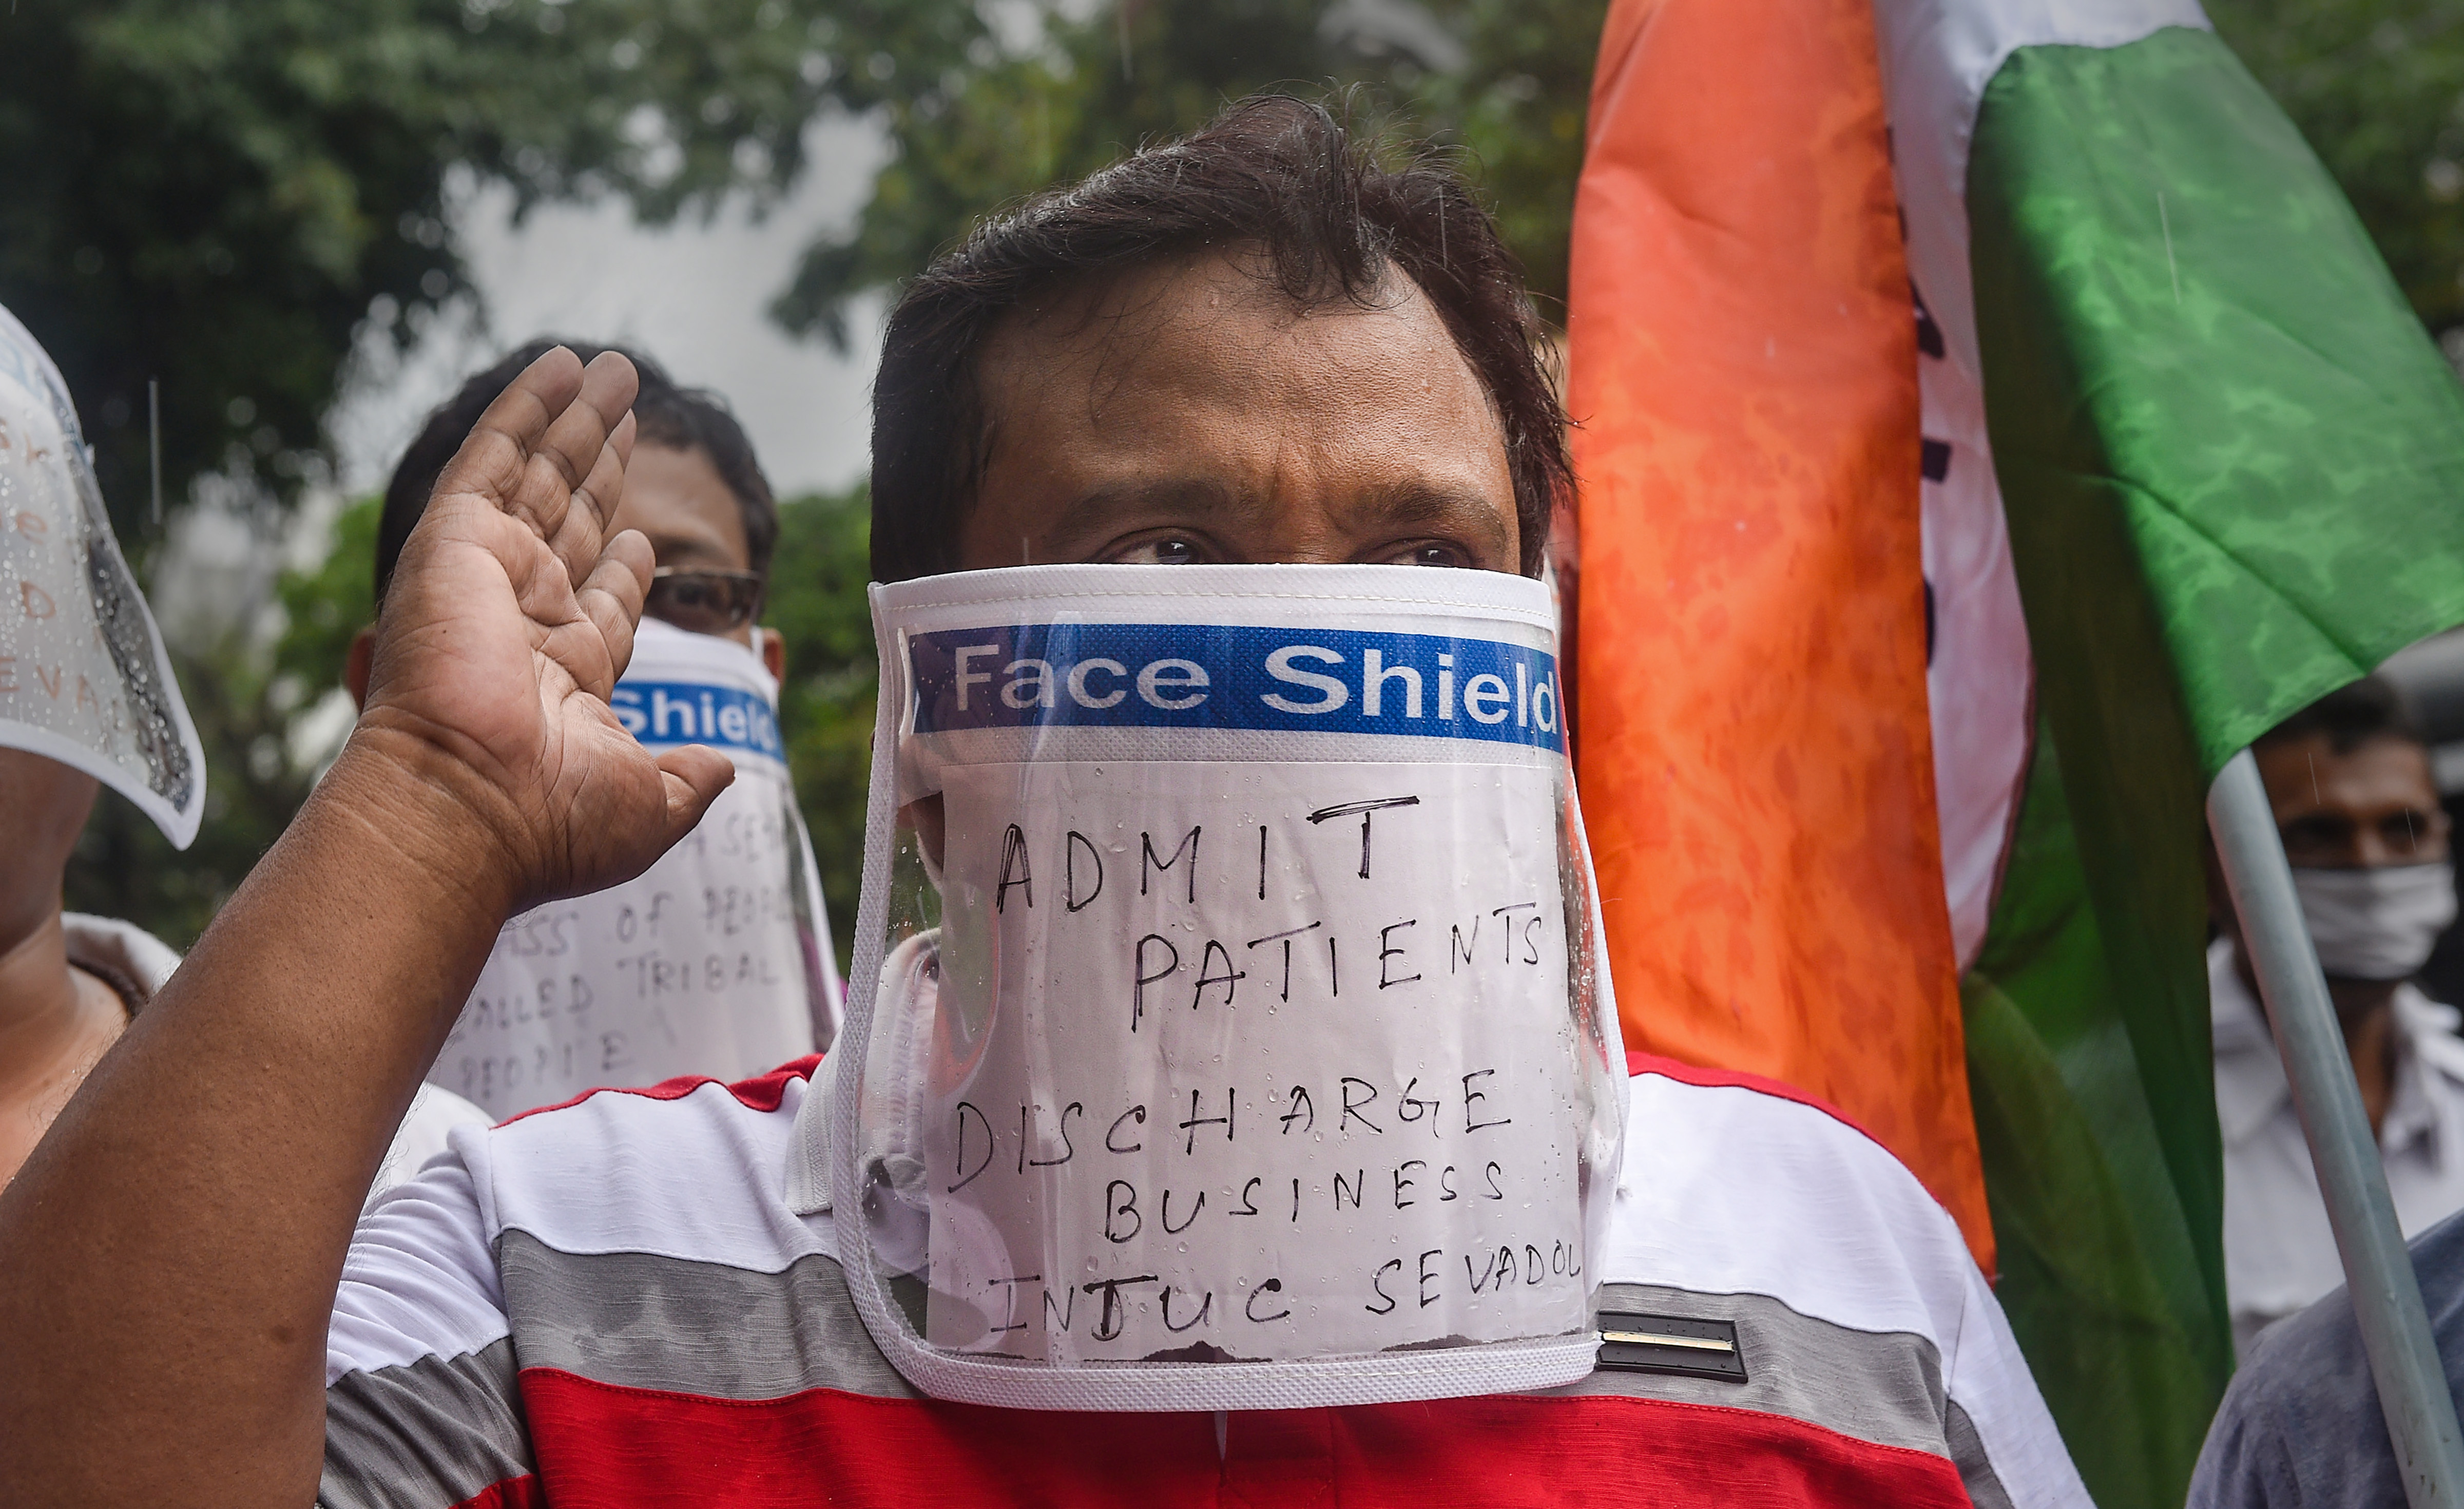 An activist wearing a face shield protests against alleged inadequacy of Calcutta Medical College Hospital in admitting Covid-19 patients, during the ongoing nationwide lockdown, in Kolkata, Tuesday, June 16, 2020.